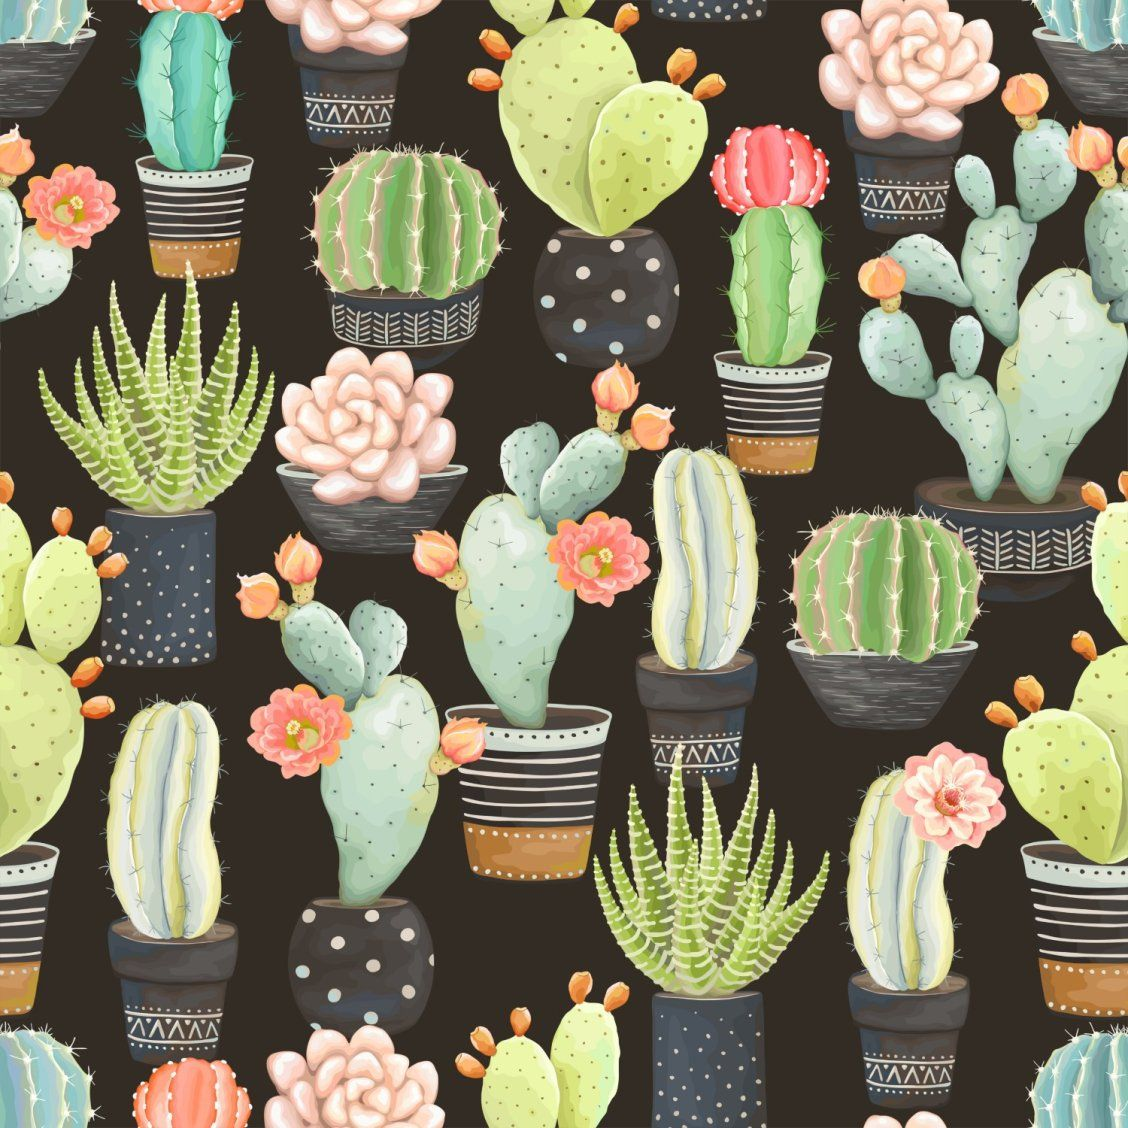 """Cactus"" Art by PixyDeco on Society6 